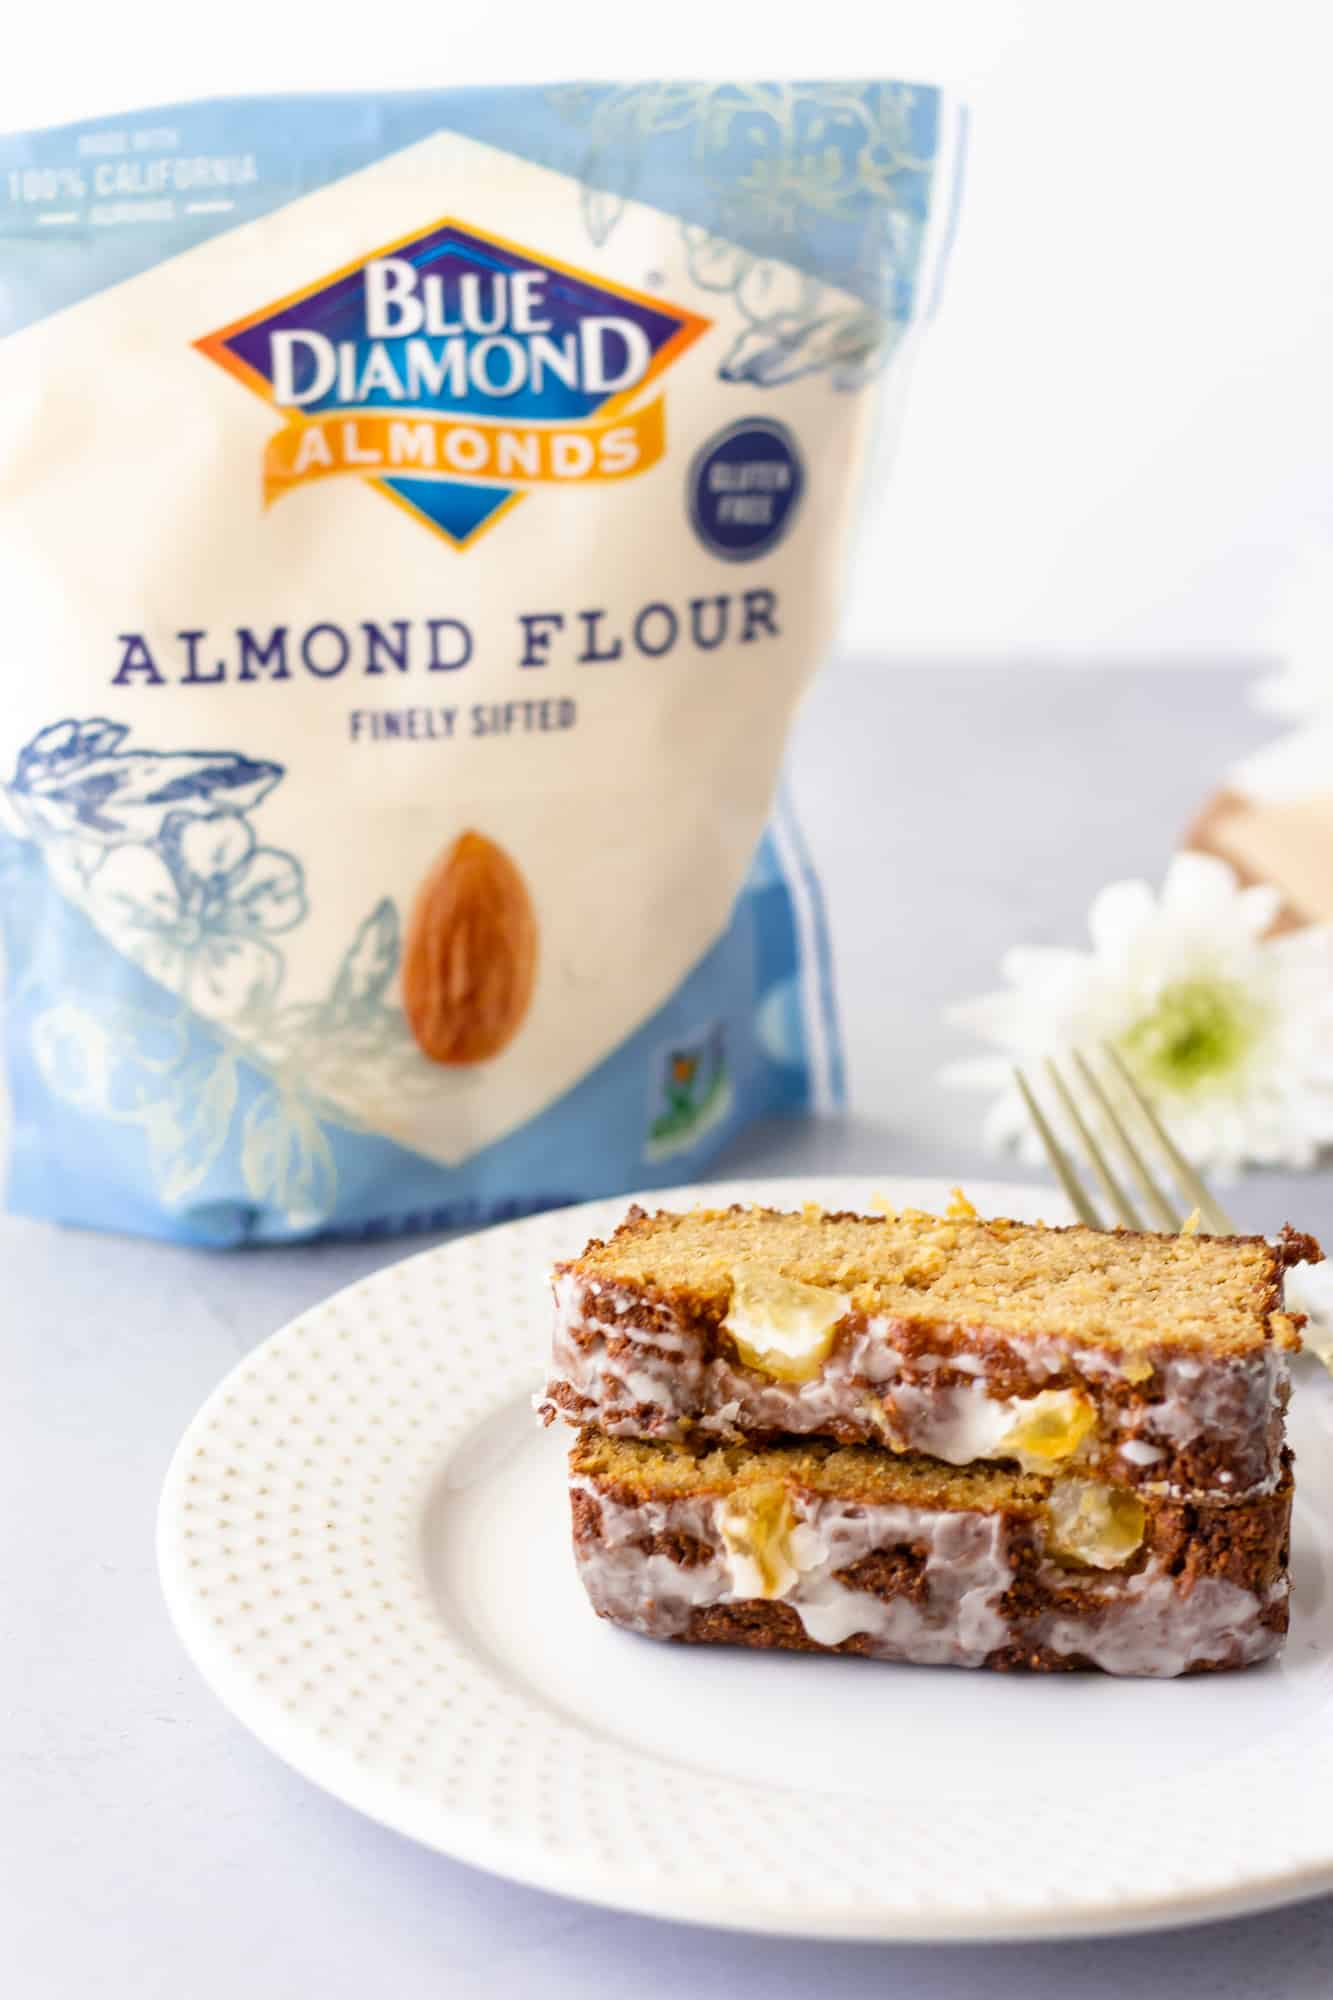 Two slices of pineapple cake on a plate with a bag of blue diamond flour in the background.